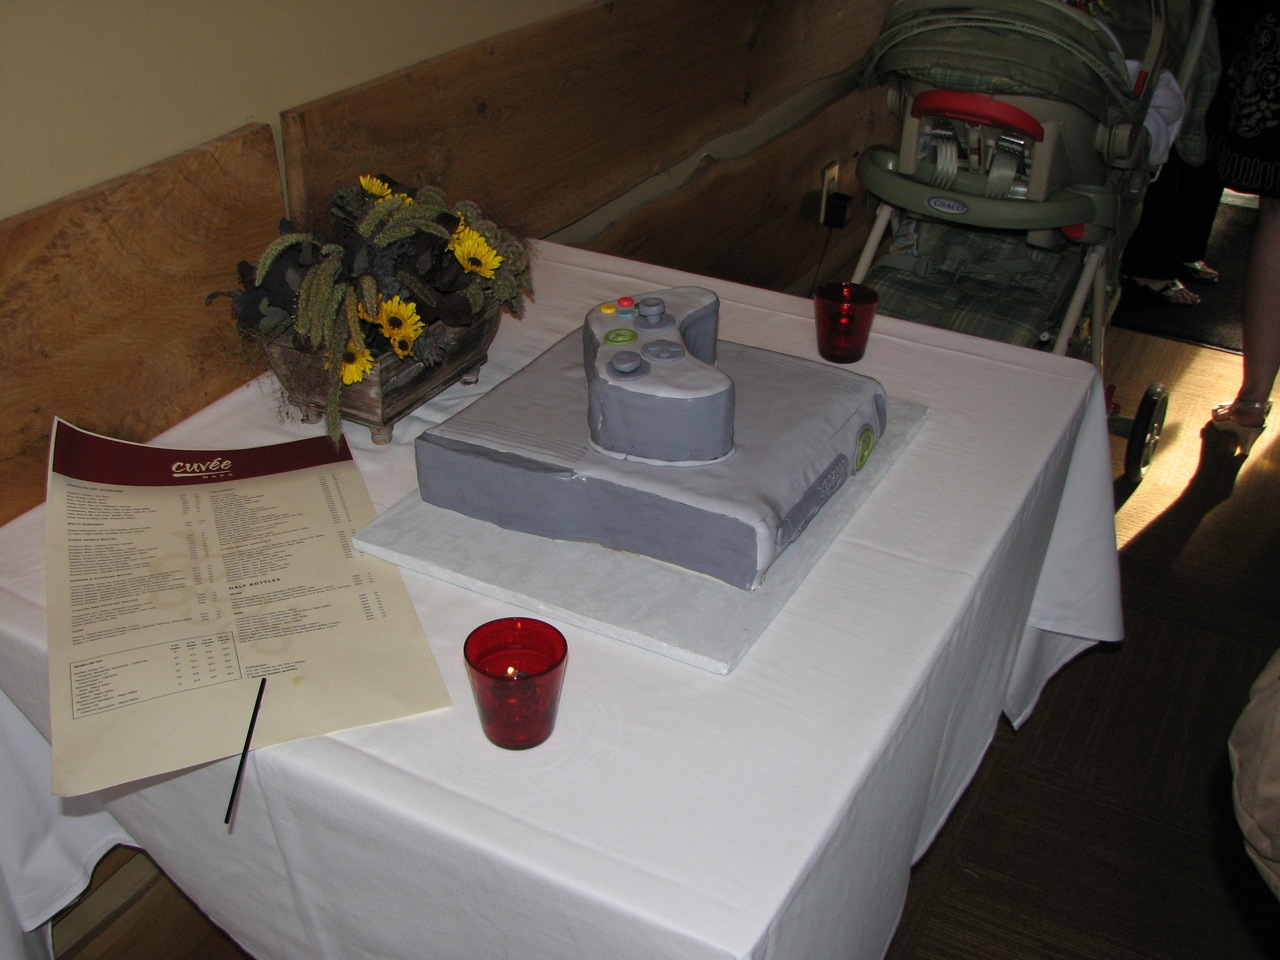 Rehearsal Dinner - a cake that meets Chad's standards: his Nintendo cake!